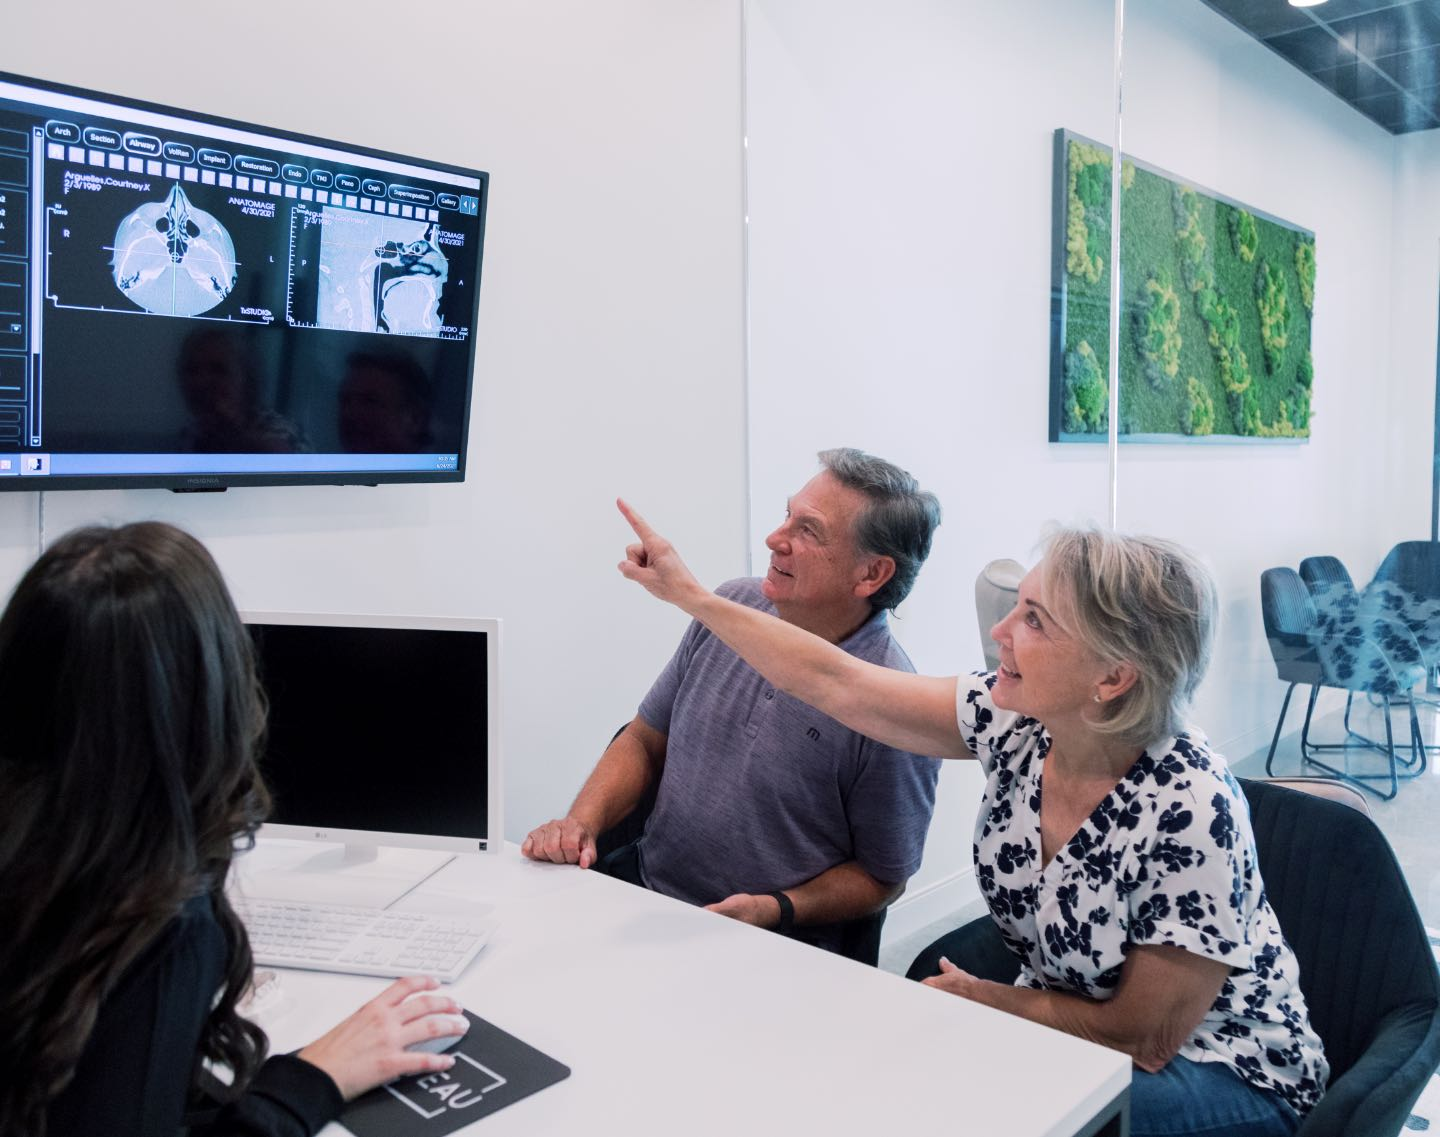 Photo of patients looking at a dental x-ray image on a screen